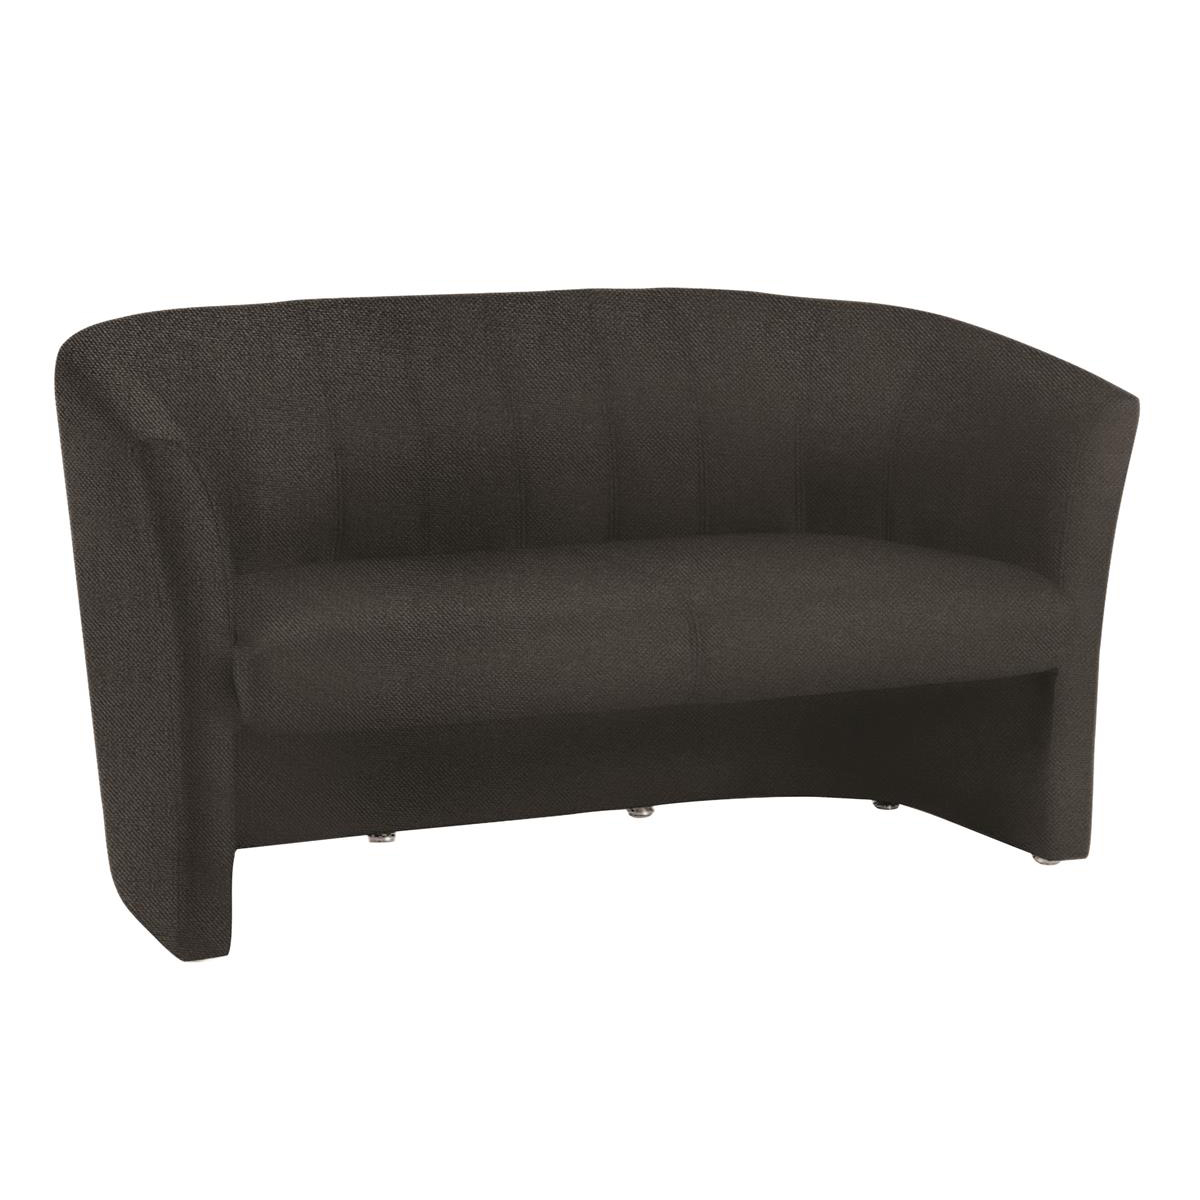 Trexus Tub 2 Seater Sofa Black 970x510x460mm Ref BR000106